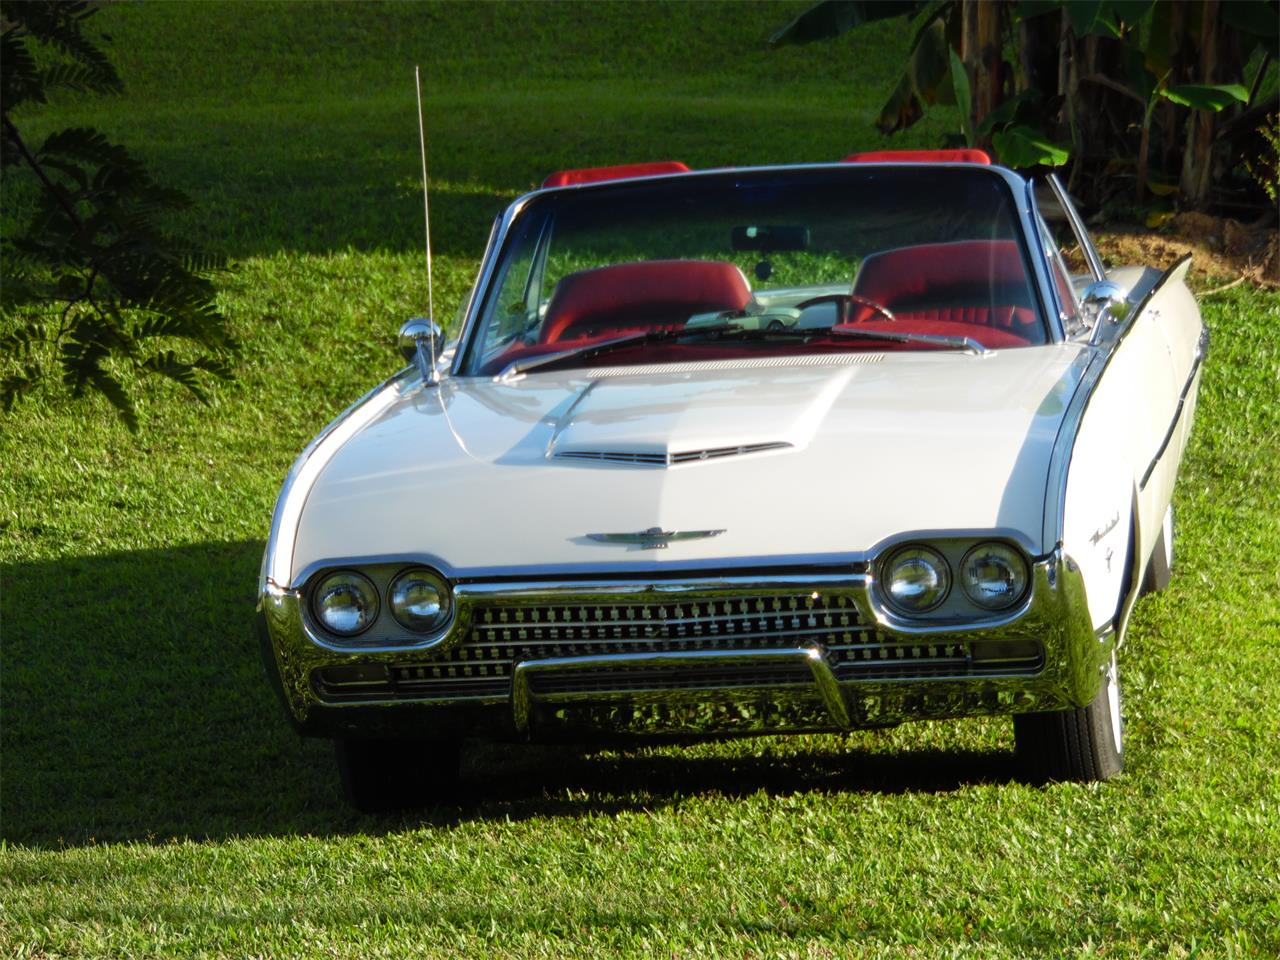 Large Picture of '62 Ford Thunderbird located in Moca Puerto Rico - $55,000.00 - MHQG